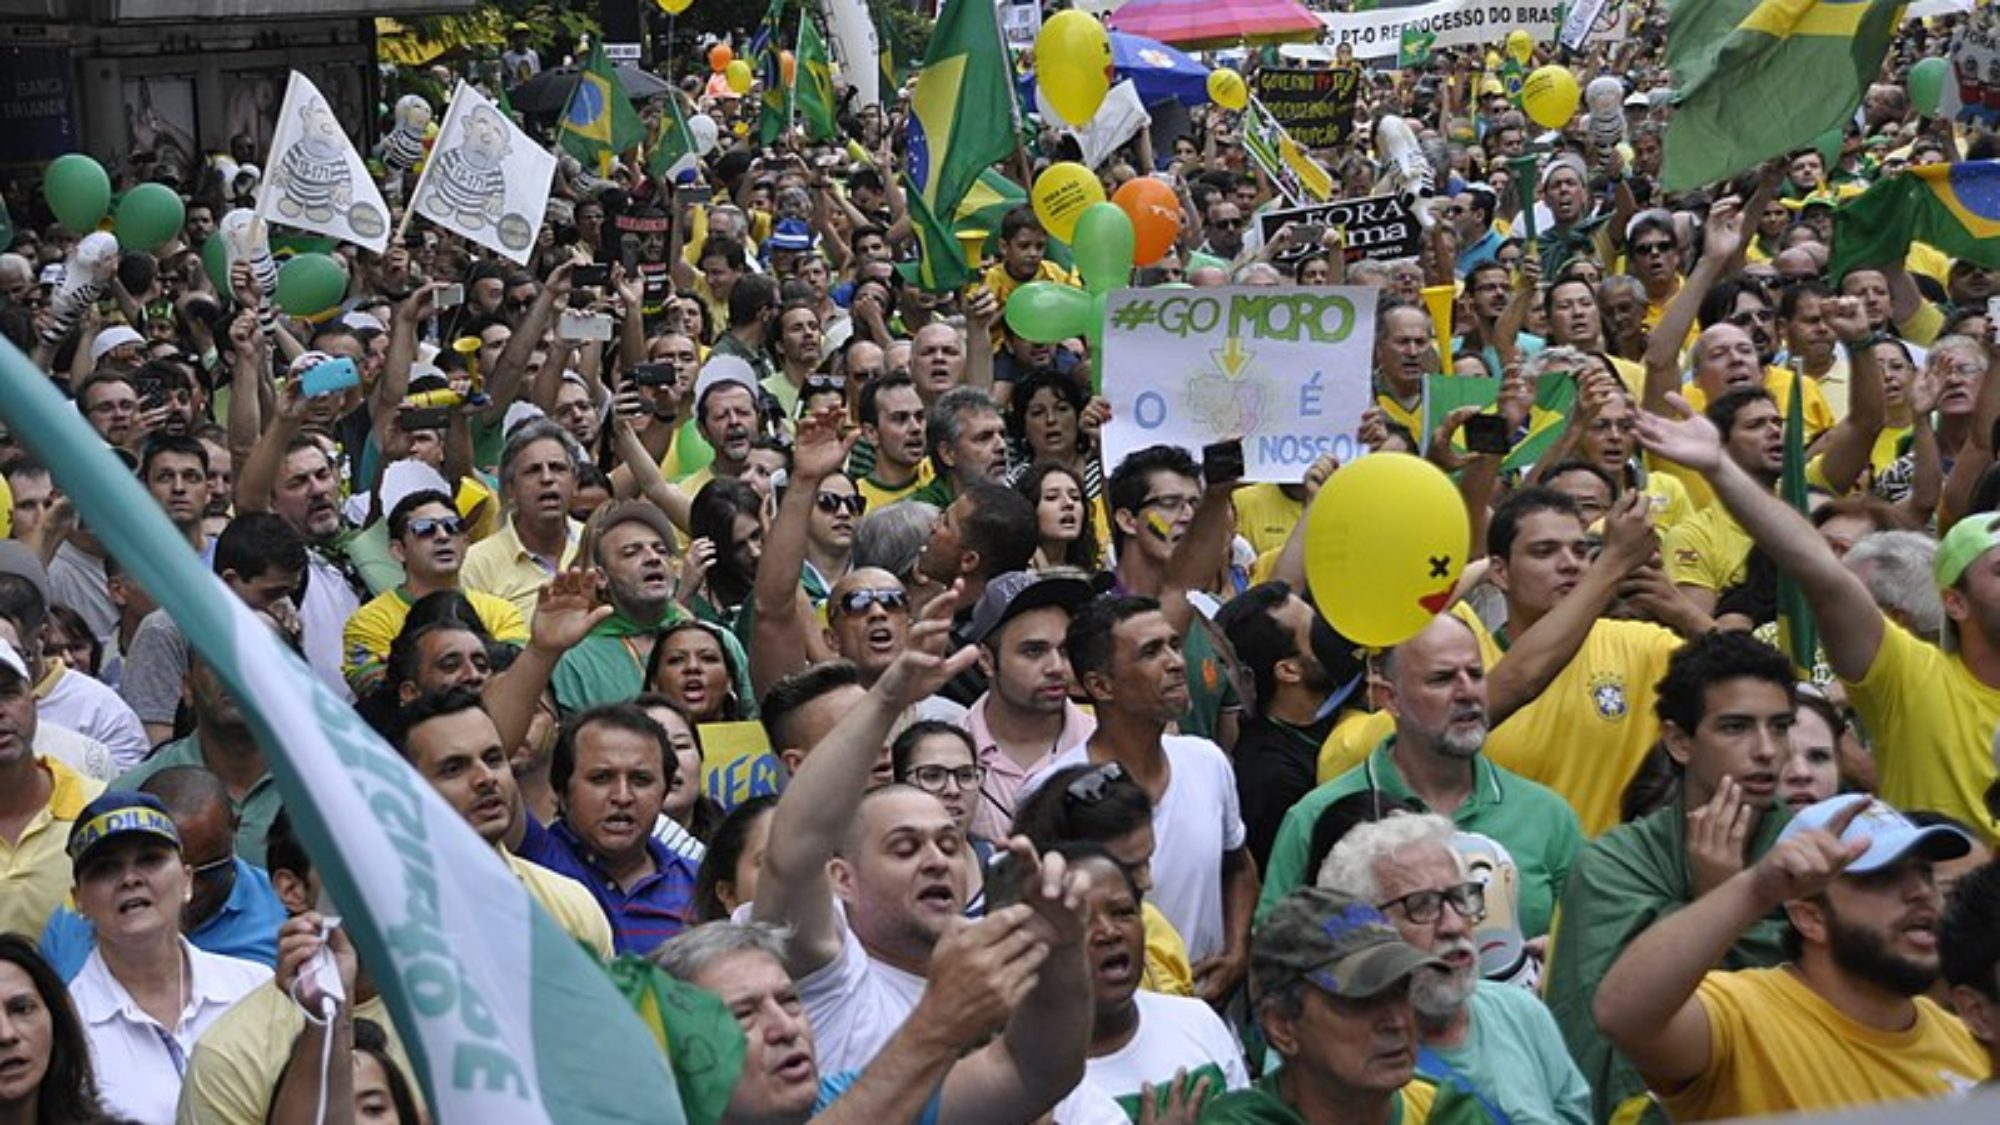 Crowd of Brazilians congregating around the time of the Brazilian president's impeachment